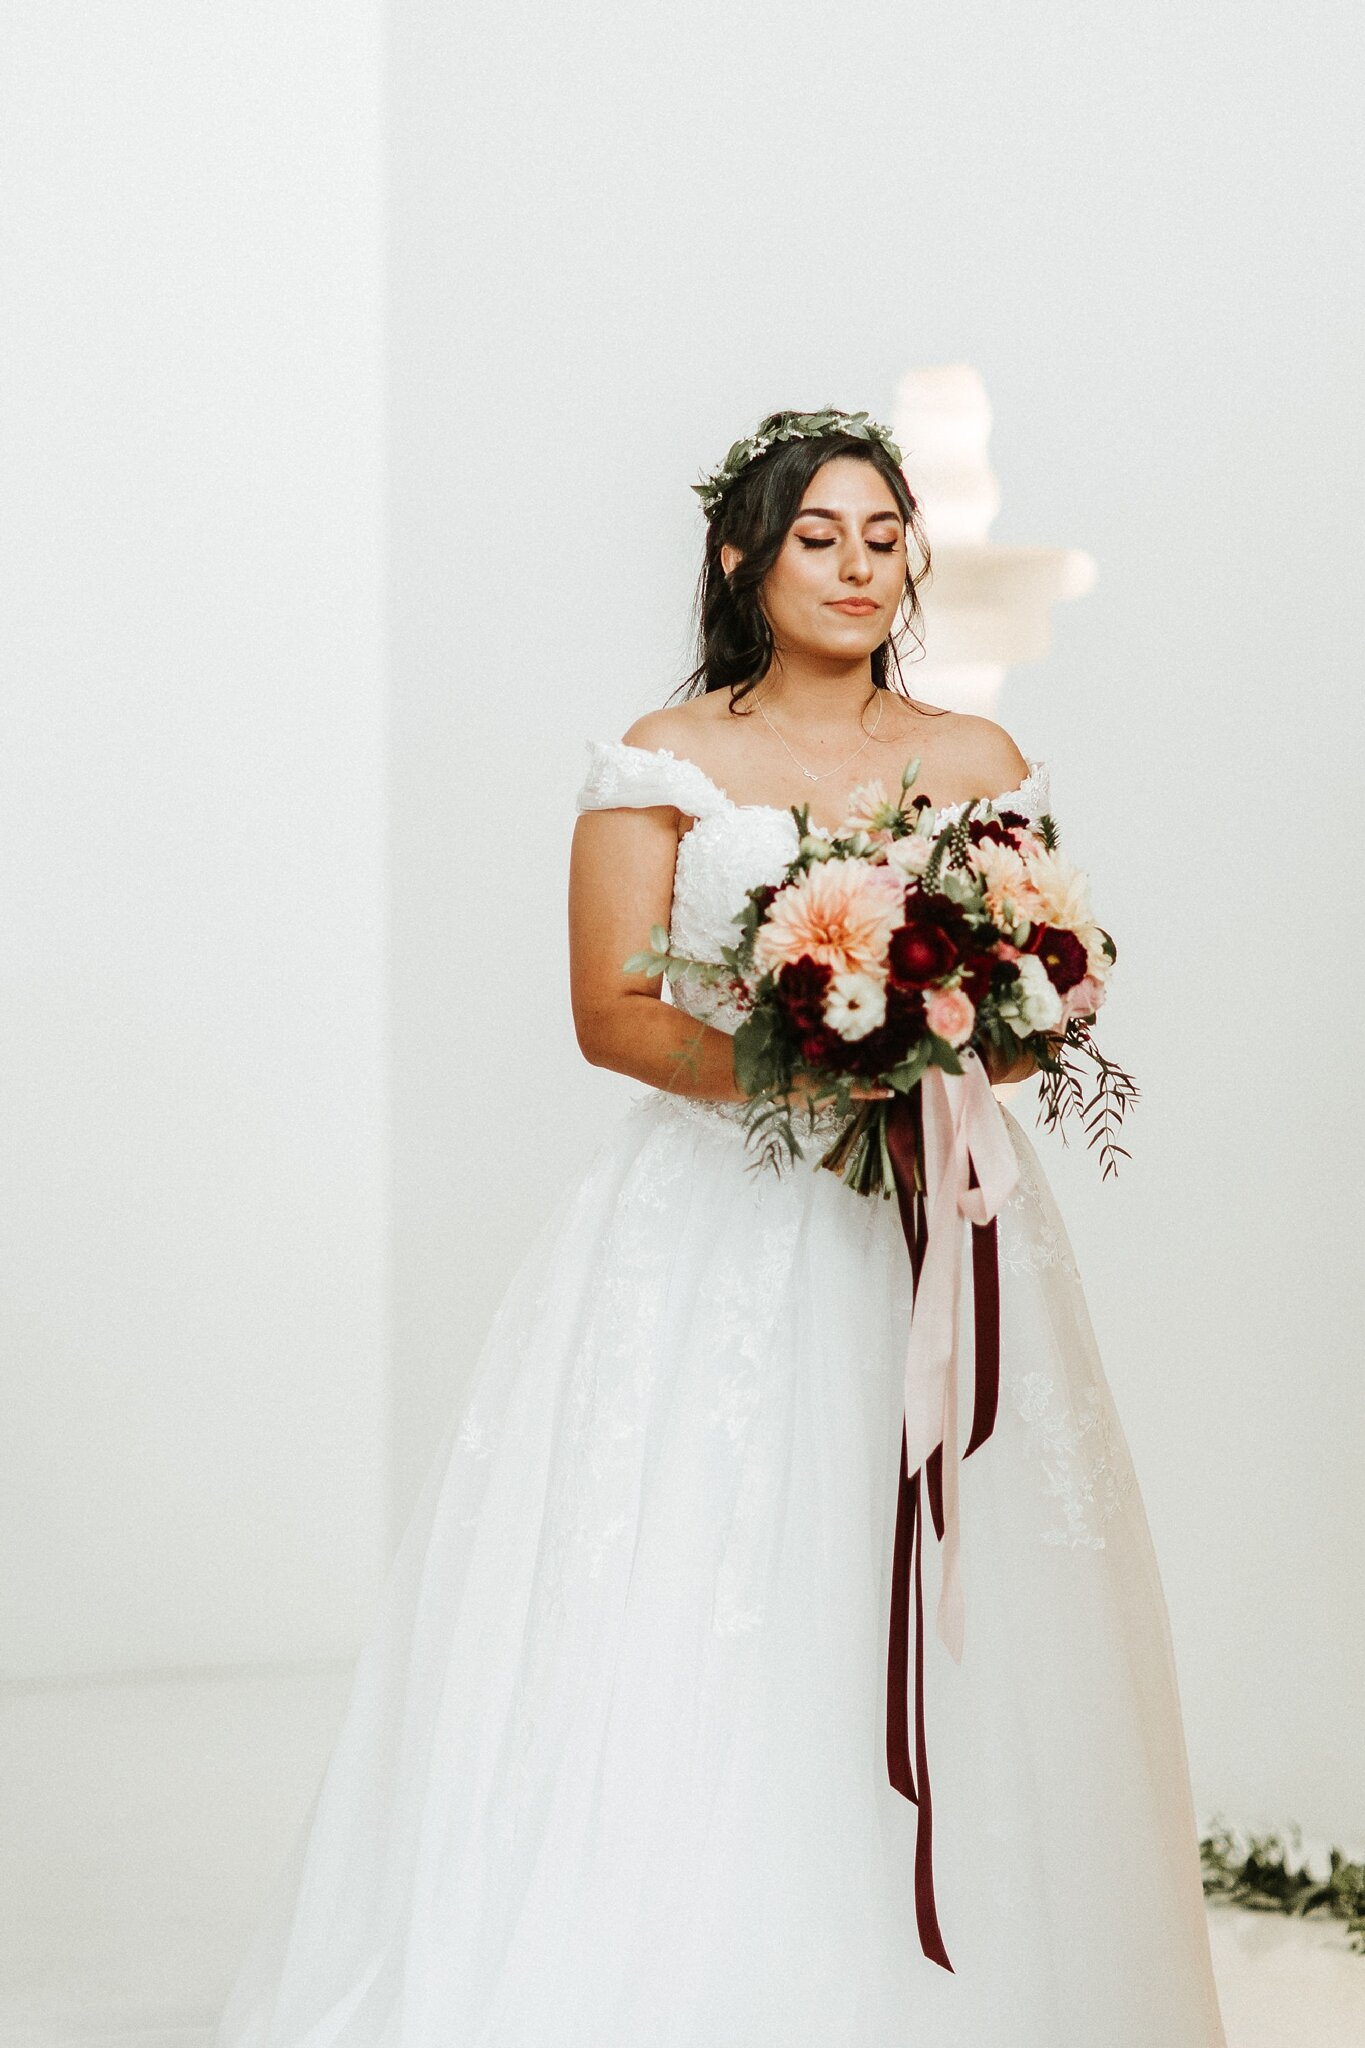 Alicia+lucia+photography+-+albuquerque+wedding+photographer+-+santa+fe+wedding+photography+-+new+mexico+wedding+photographer+-+new+mexico+wedding+-+wedding+-+bridal+gown+-+wedding+gown+-+ballgown+wedding+gown+-+ballgown+bridal+gown_0065.jpg